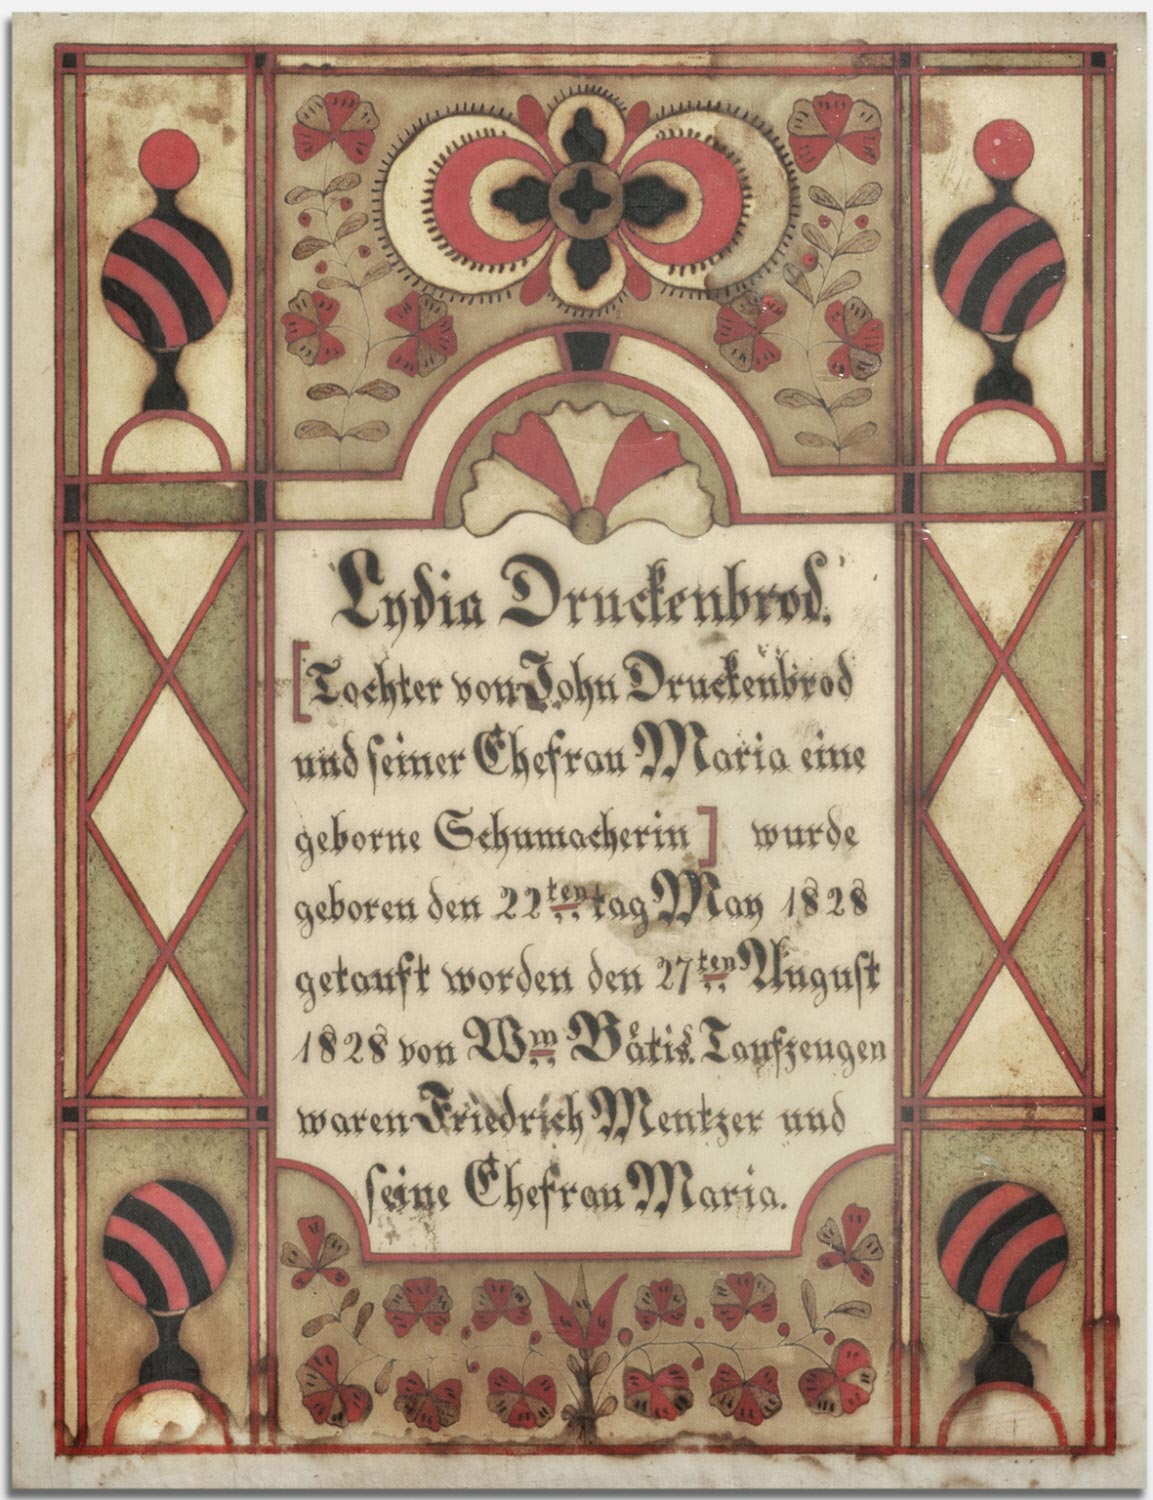 Birth and Baptismal Certificate for Lydia Druckenbrod (born May 22, 1828)